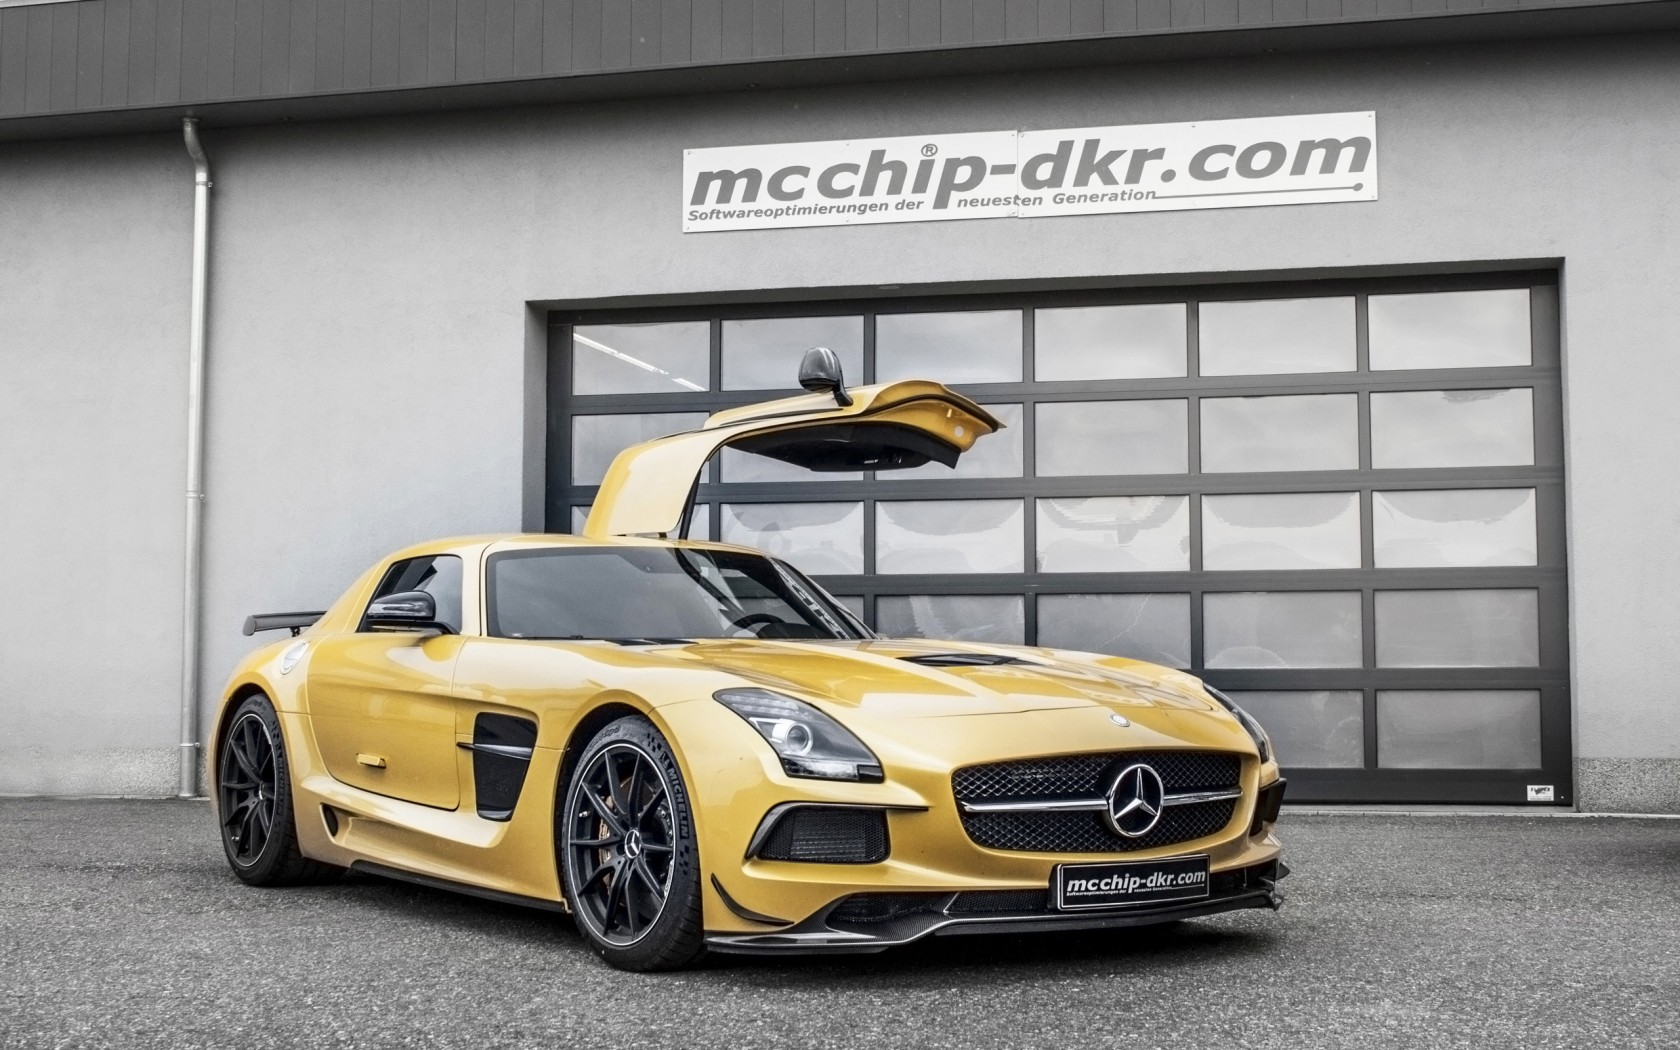 Iphone 6 Hd Wallpaper Black And White 2014 Mcchip Dkr Mercedes Benz Sls Amg Black Series